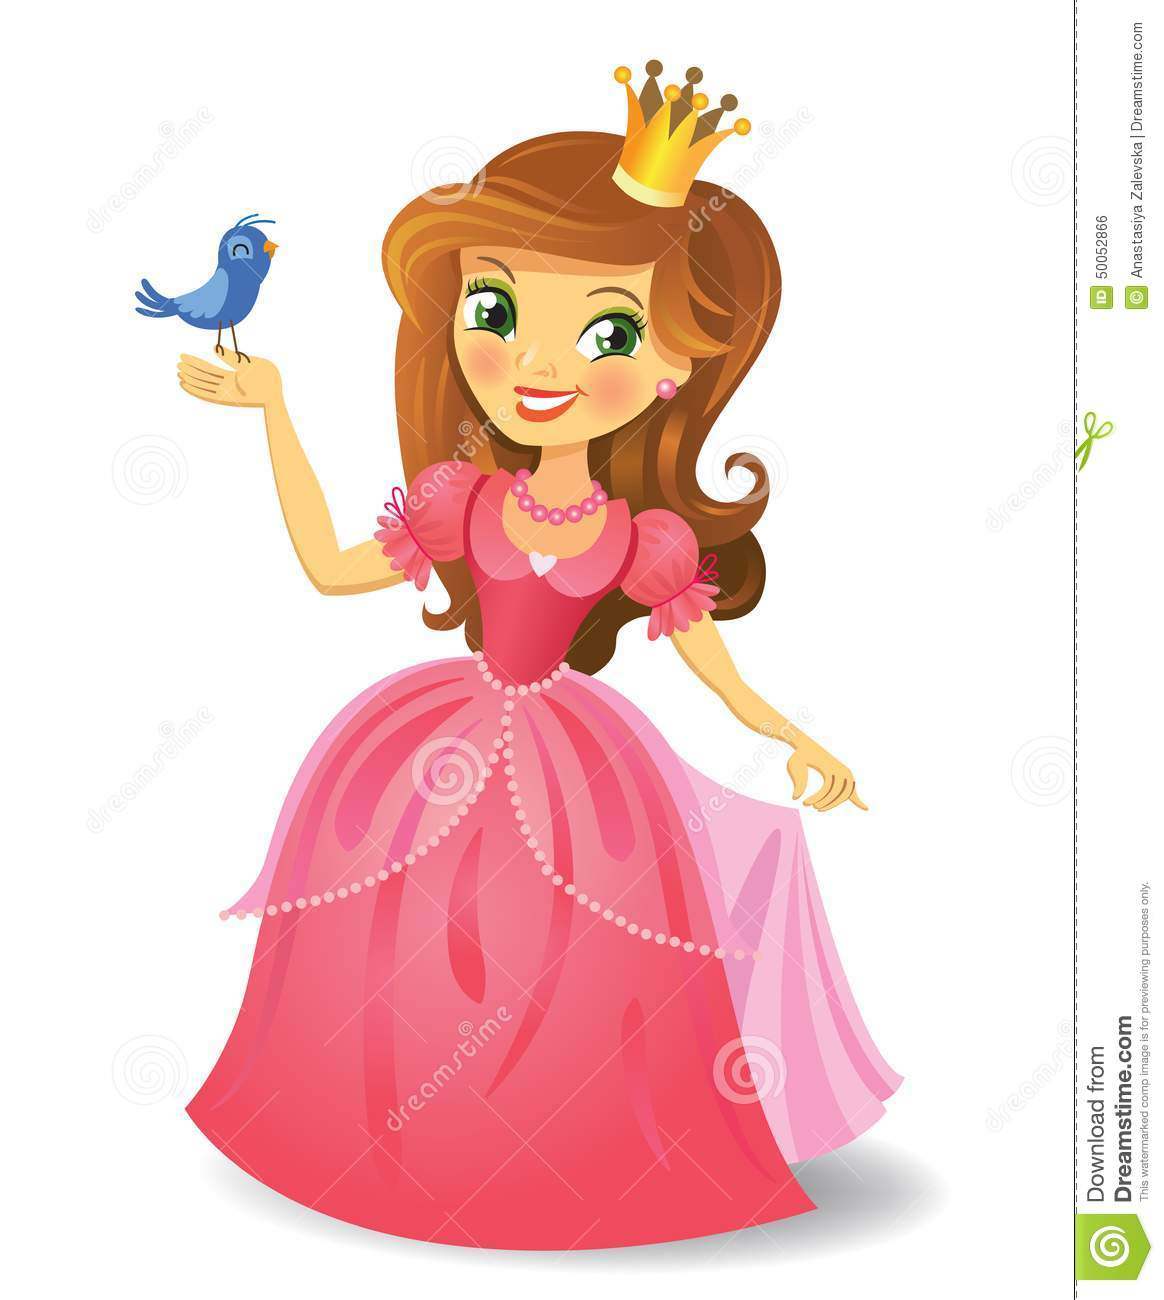 Belle Princesse Illustration De Vecteur Image 50052866